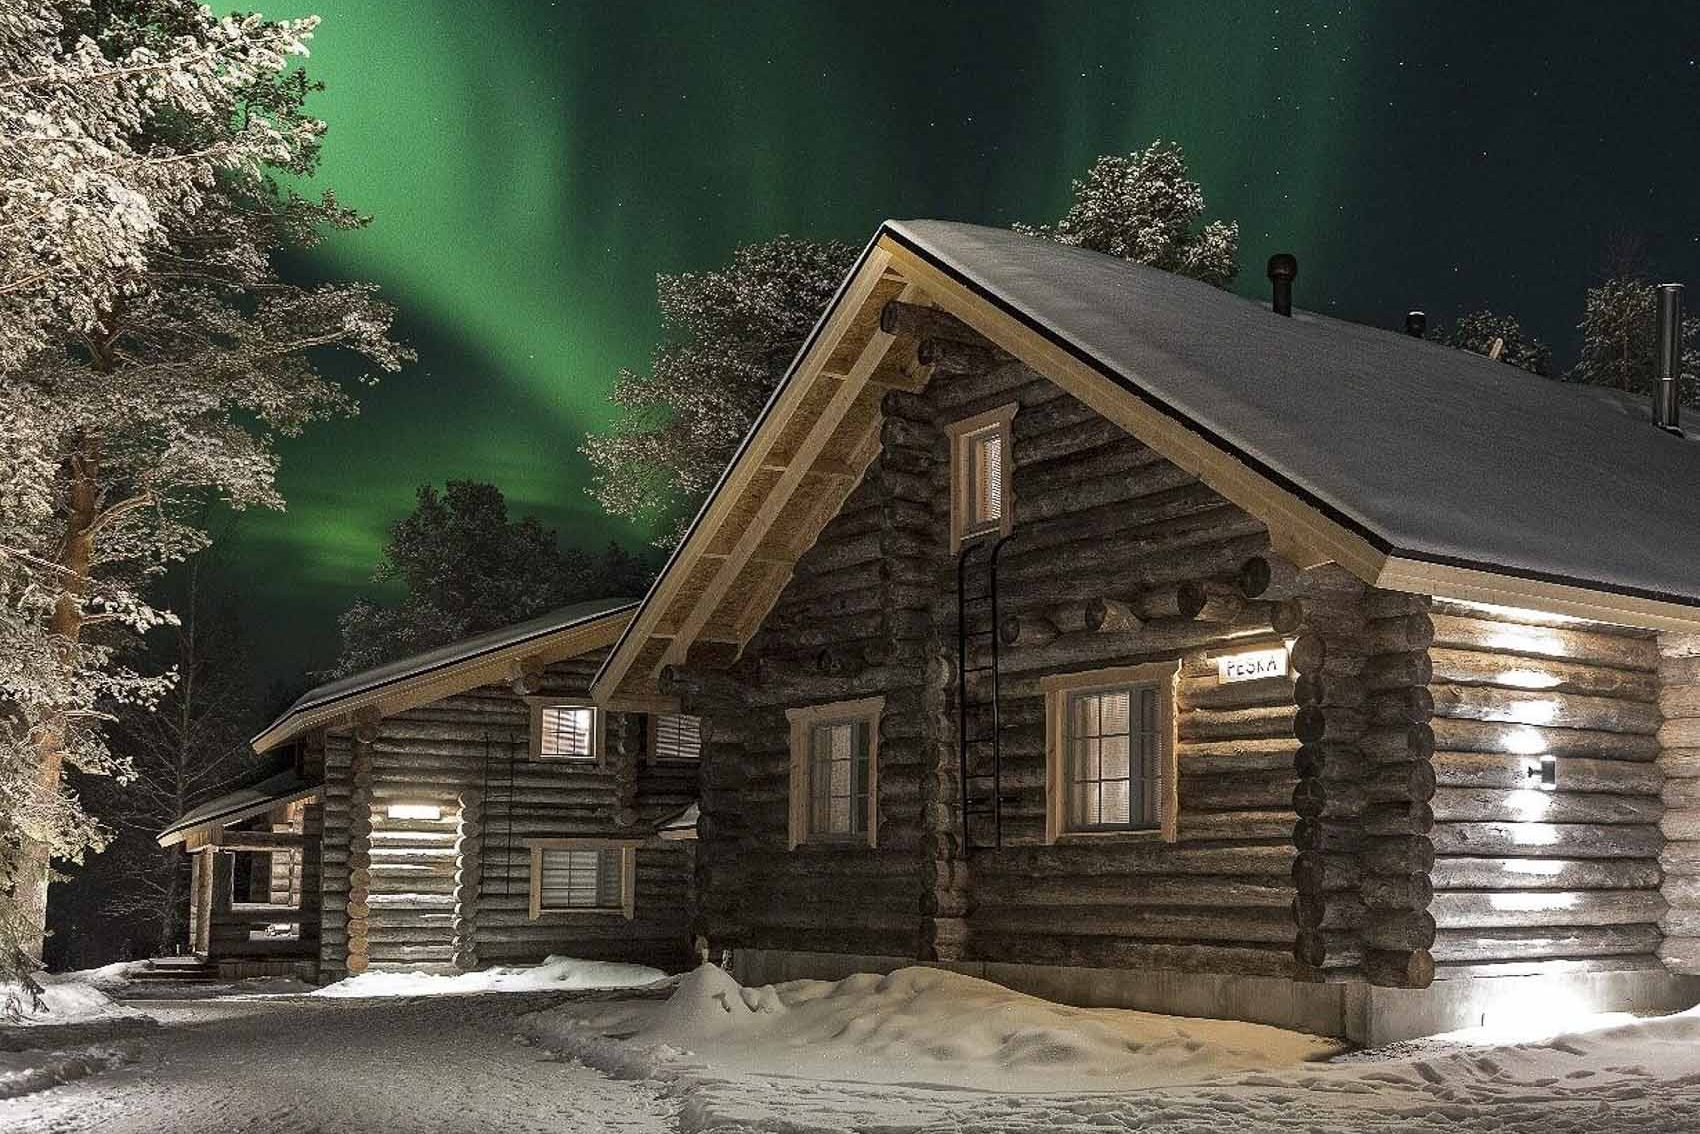 wilderness lodge in Finnish Lapland with northern lights in the background - bucket list travel